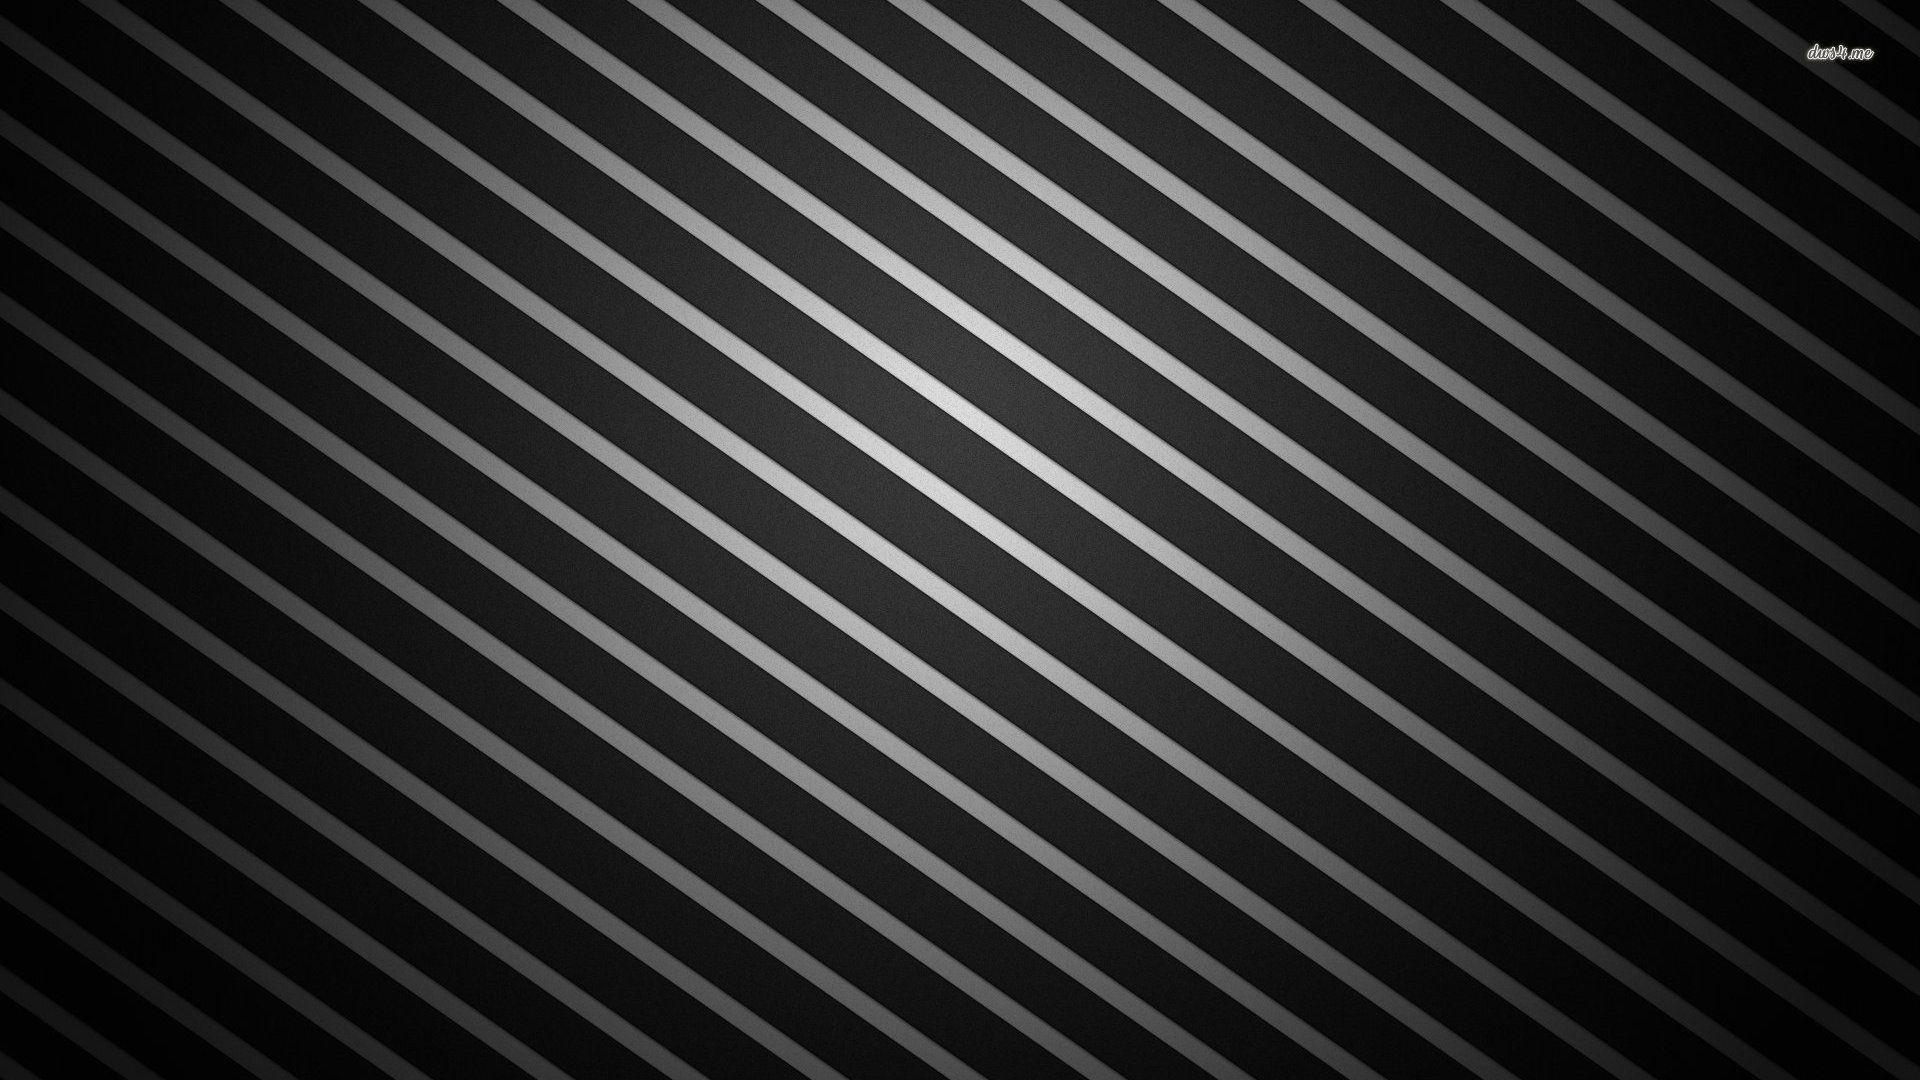 Black and Silver Wallpaper | HD Wallpapers | Pinterest | Silver ...